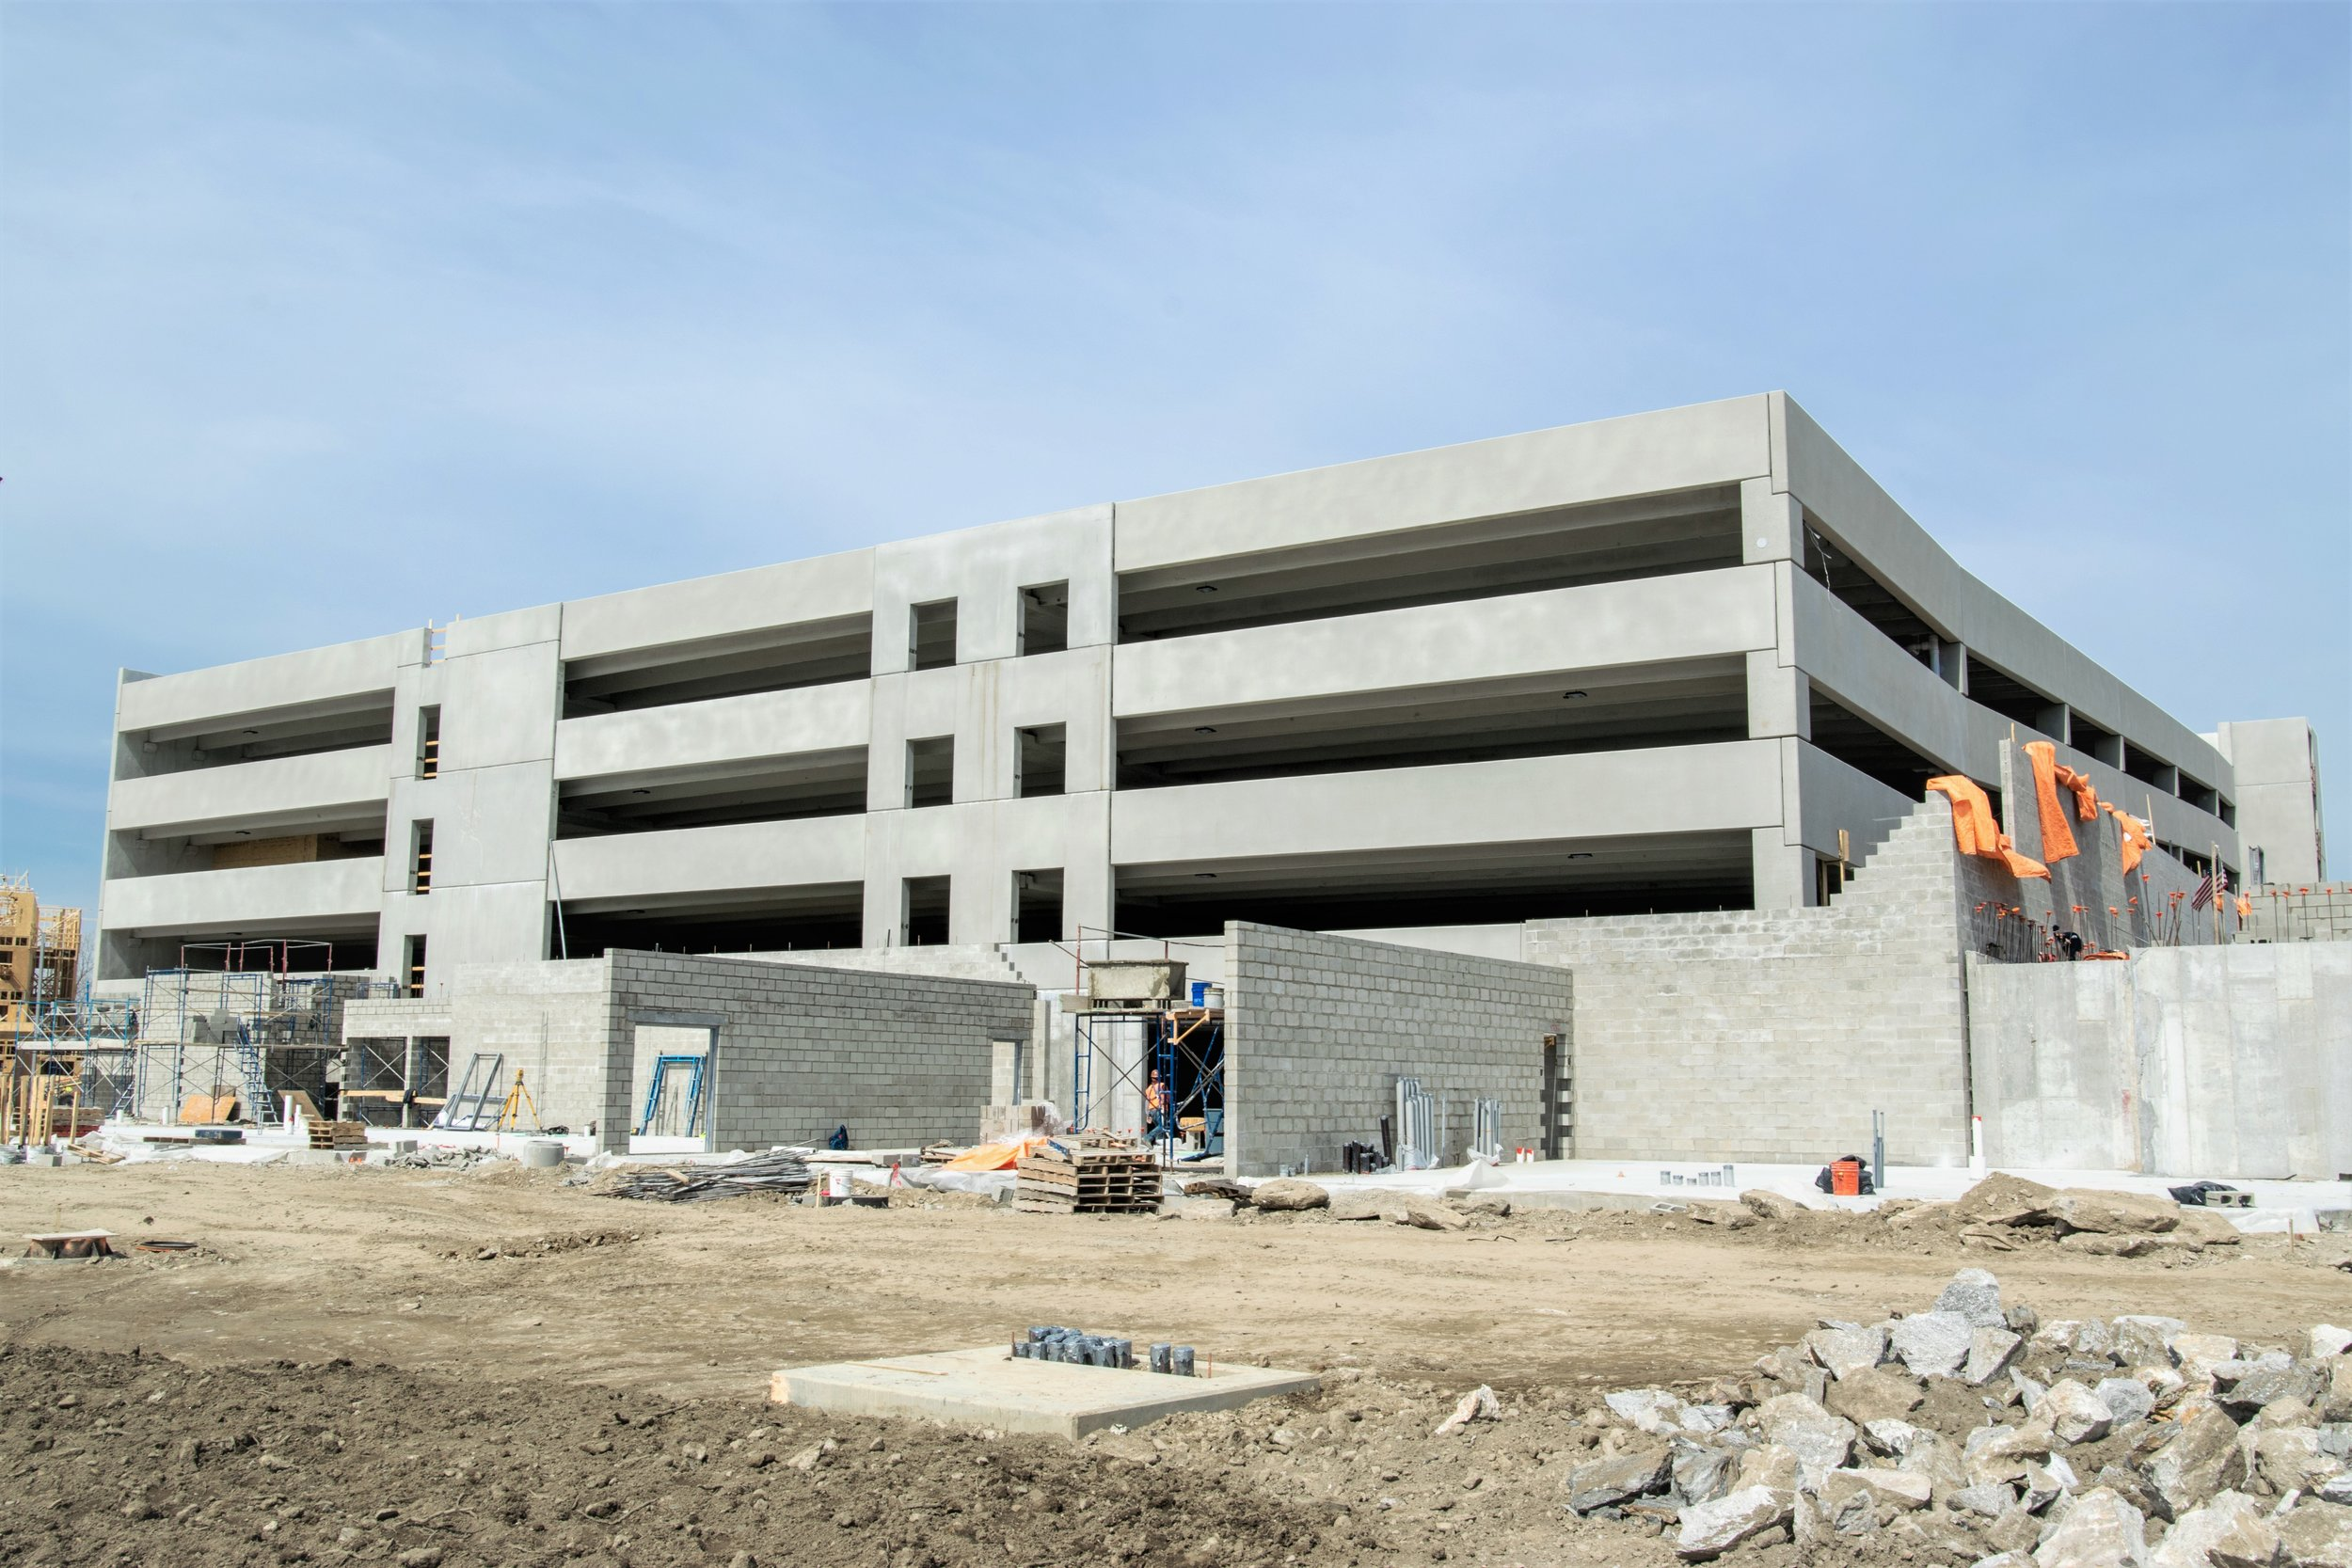 Parking Garage Carraway Apartments built by March Construction